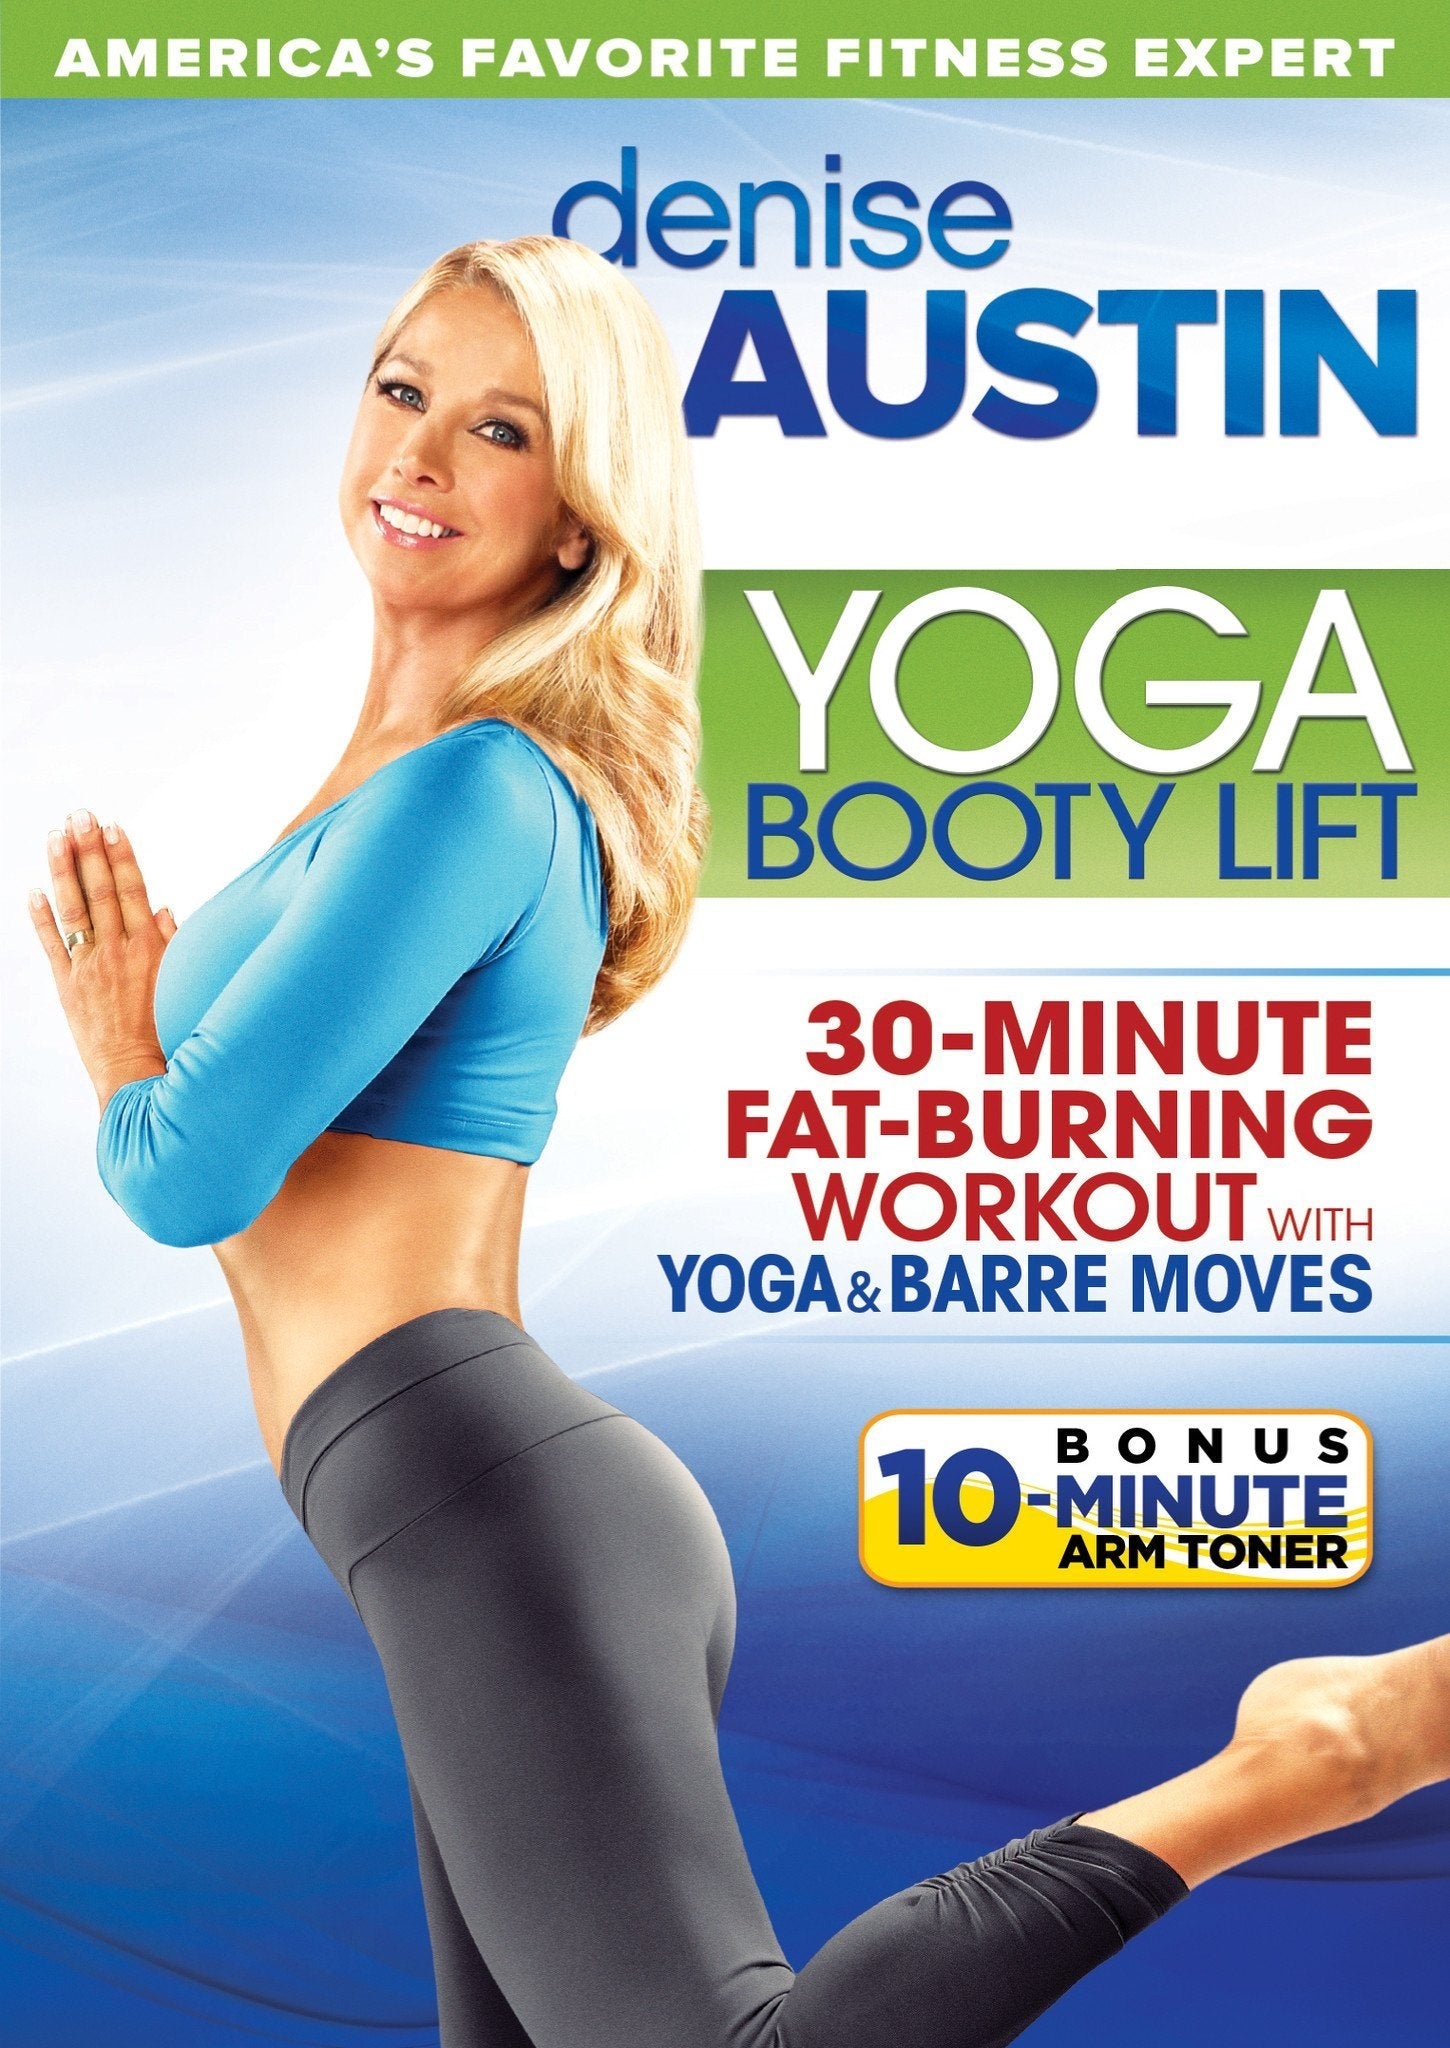 Denise Austin Yoga Booty Lift Collage Video